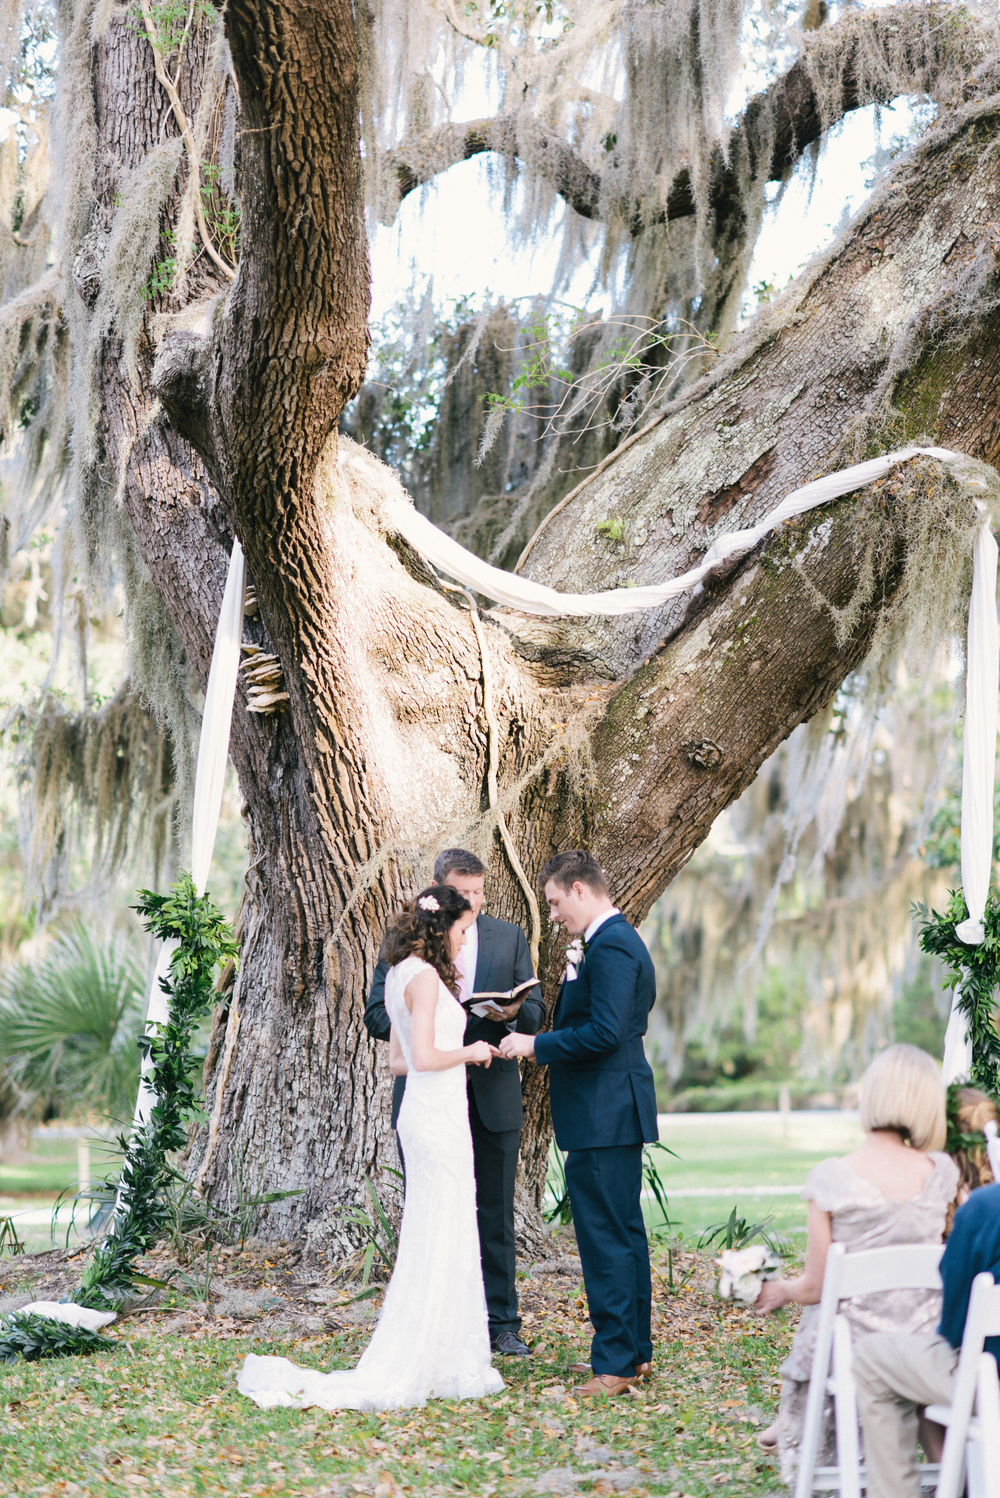 kadi-and-matt-carroll-april-9-2016-jekyl-island-wedding-m-newsom-photography- (496 of 744).jpg